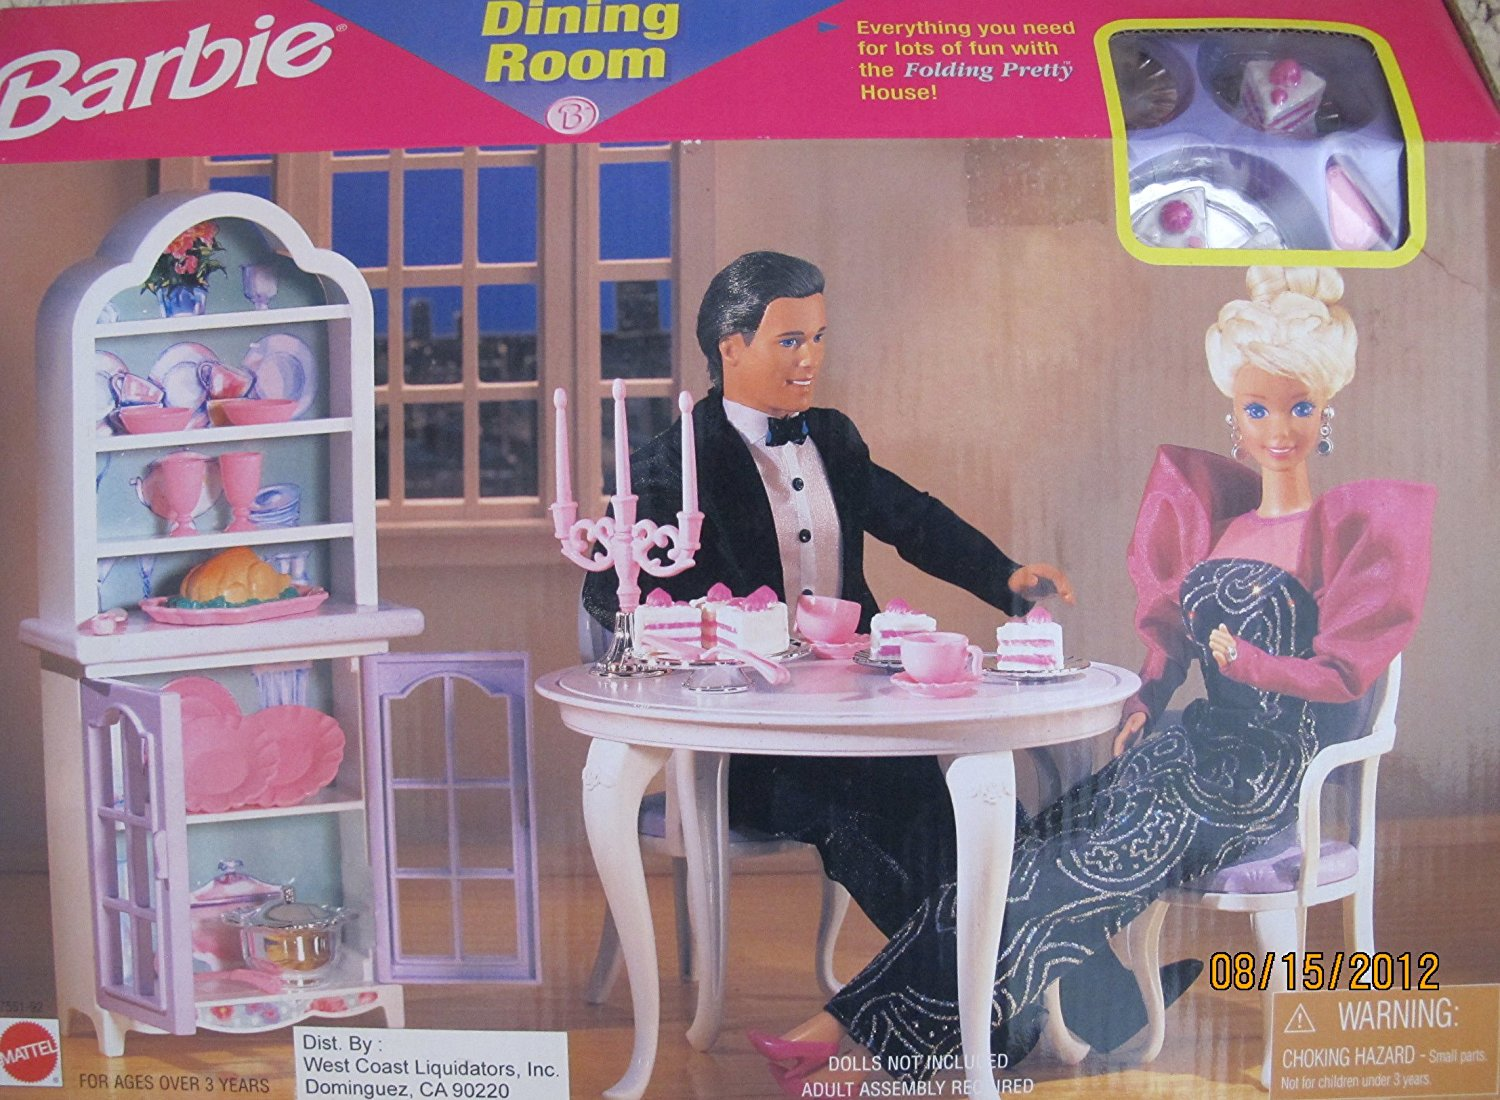 Buy BARBIE DINING ROOM PLAYSET Can Be Used w FOLDING PRETTY ...